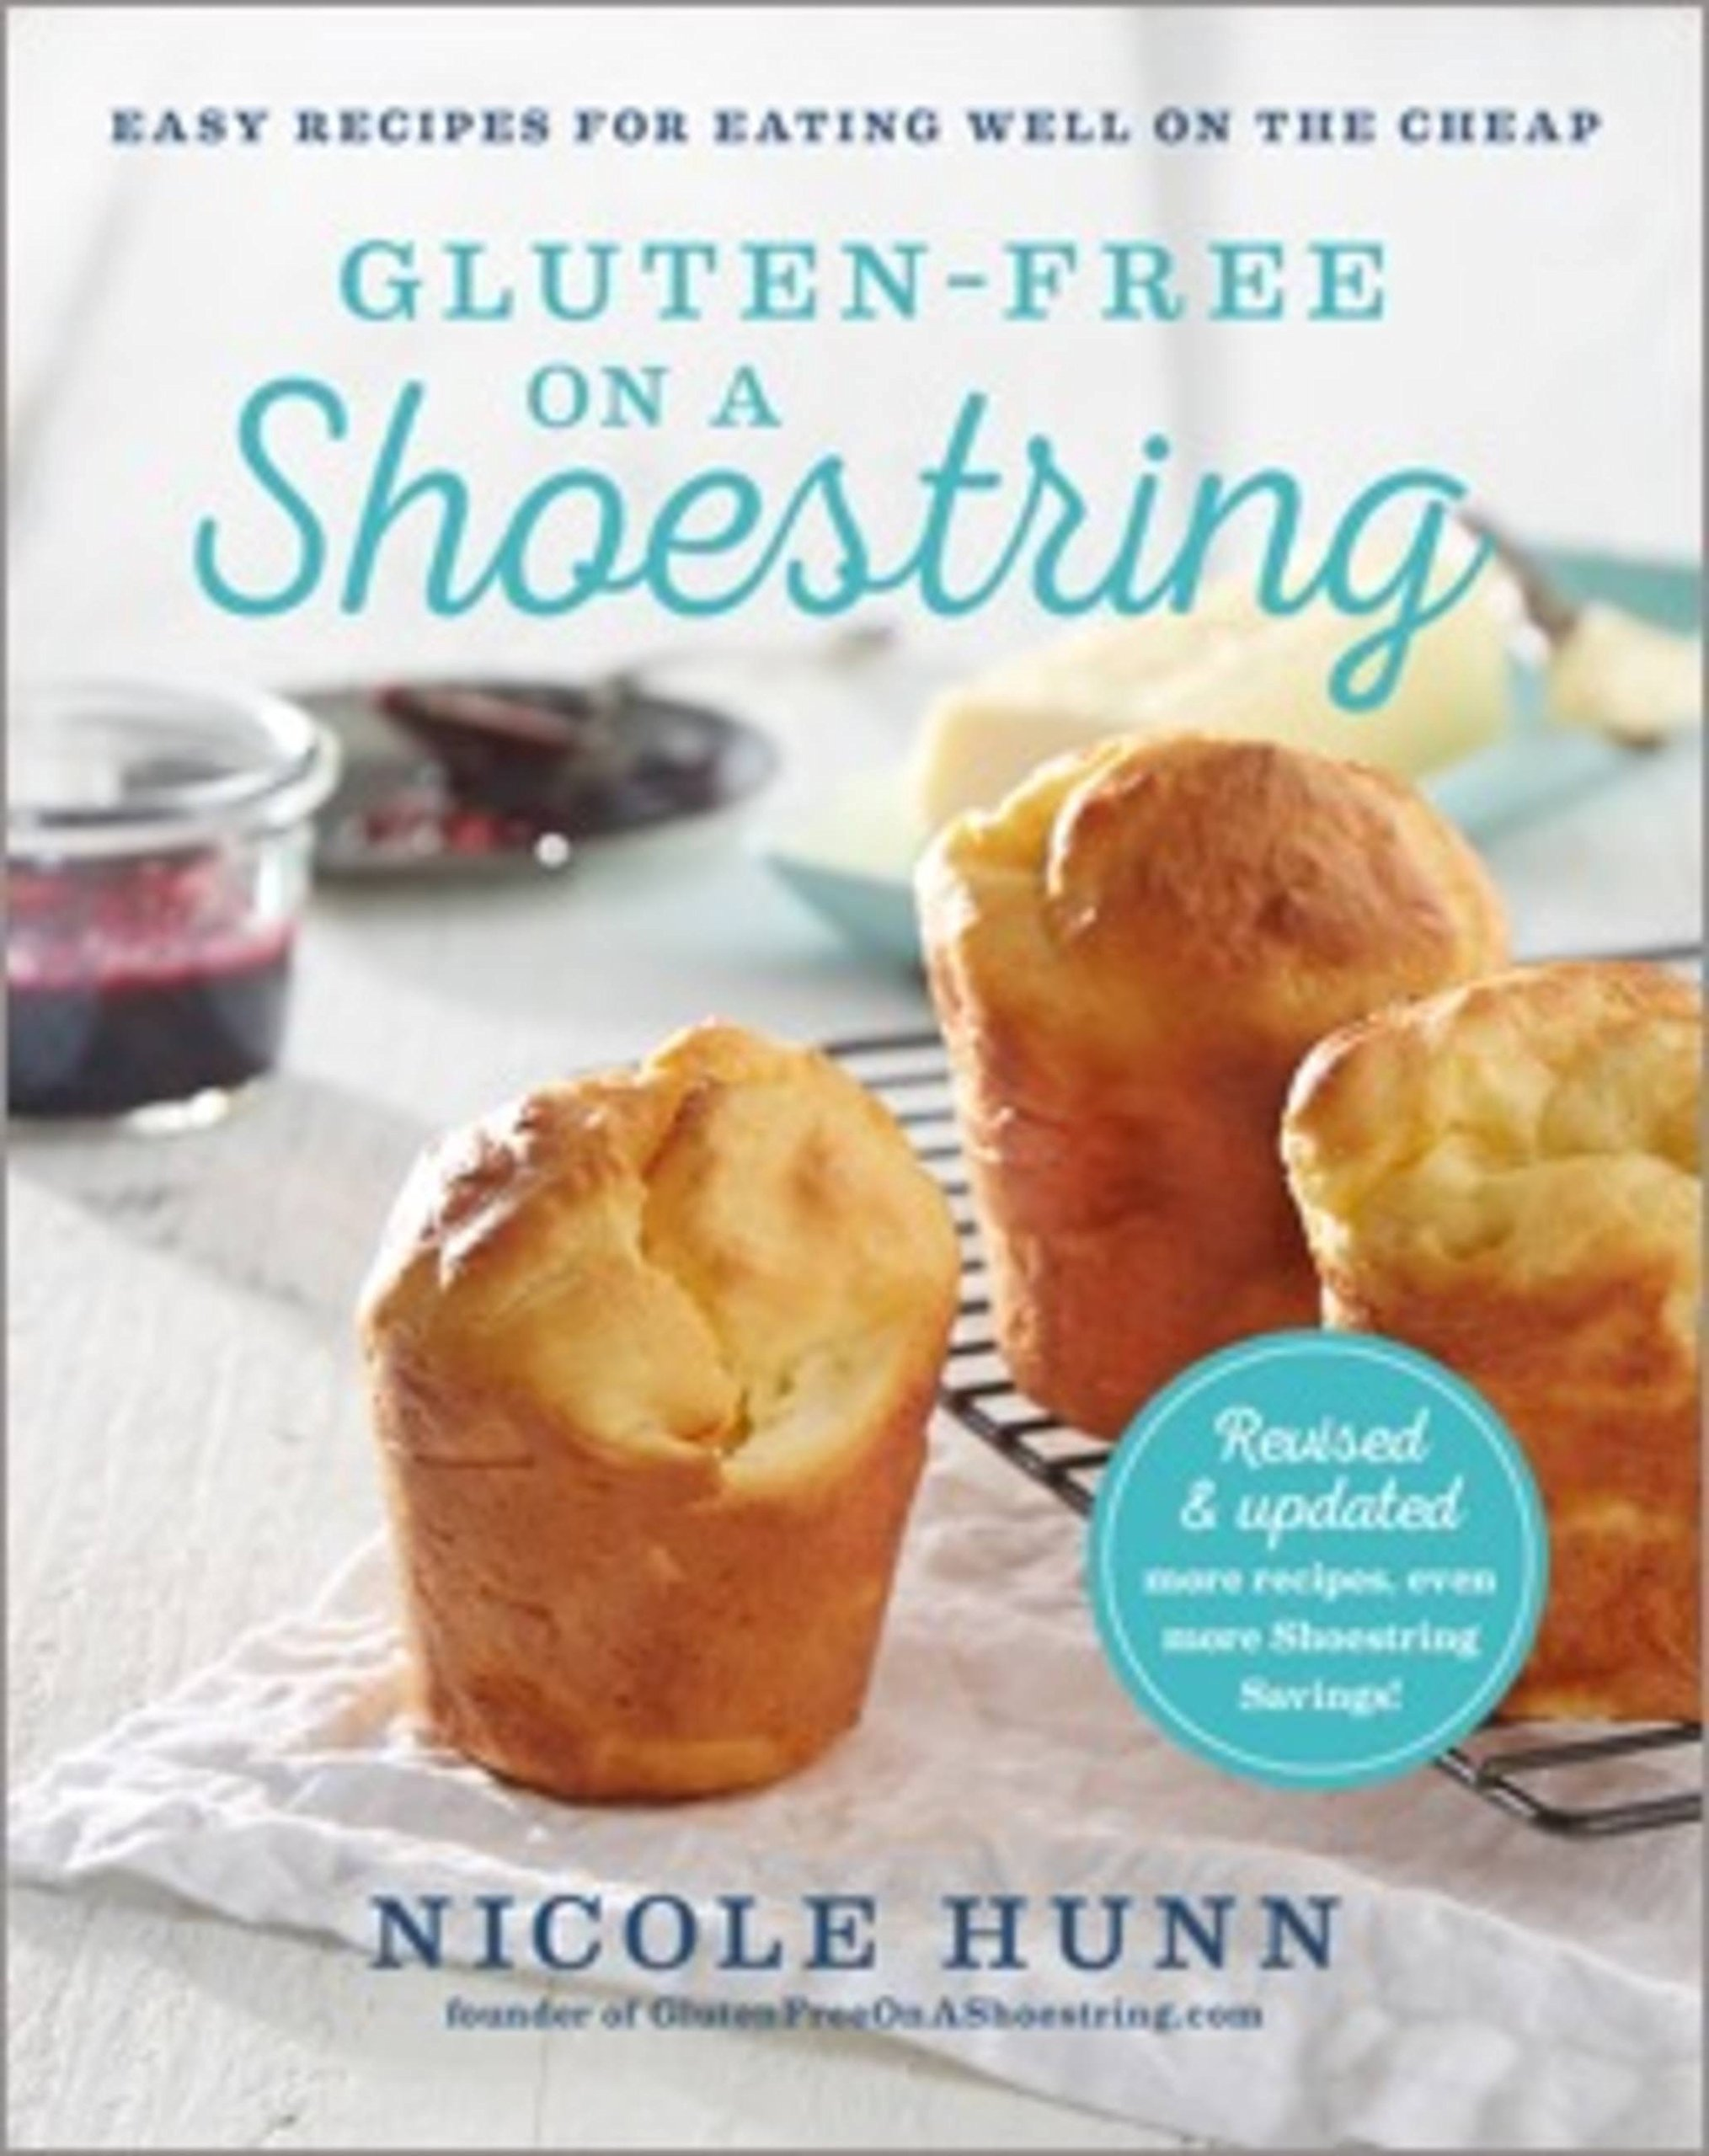 Gluten-Free on a Shoestring: 125 Easy Recipes for Eating Well on the Cheap by Spring Arbor/Ingram